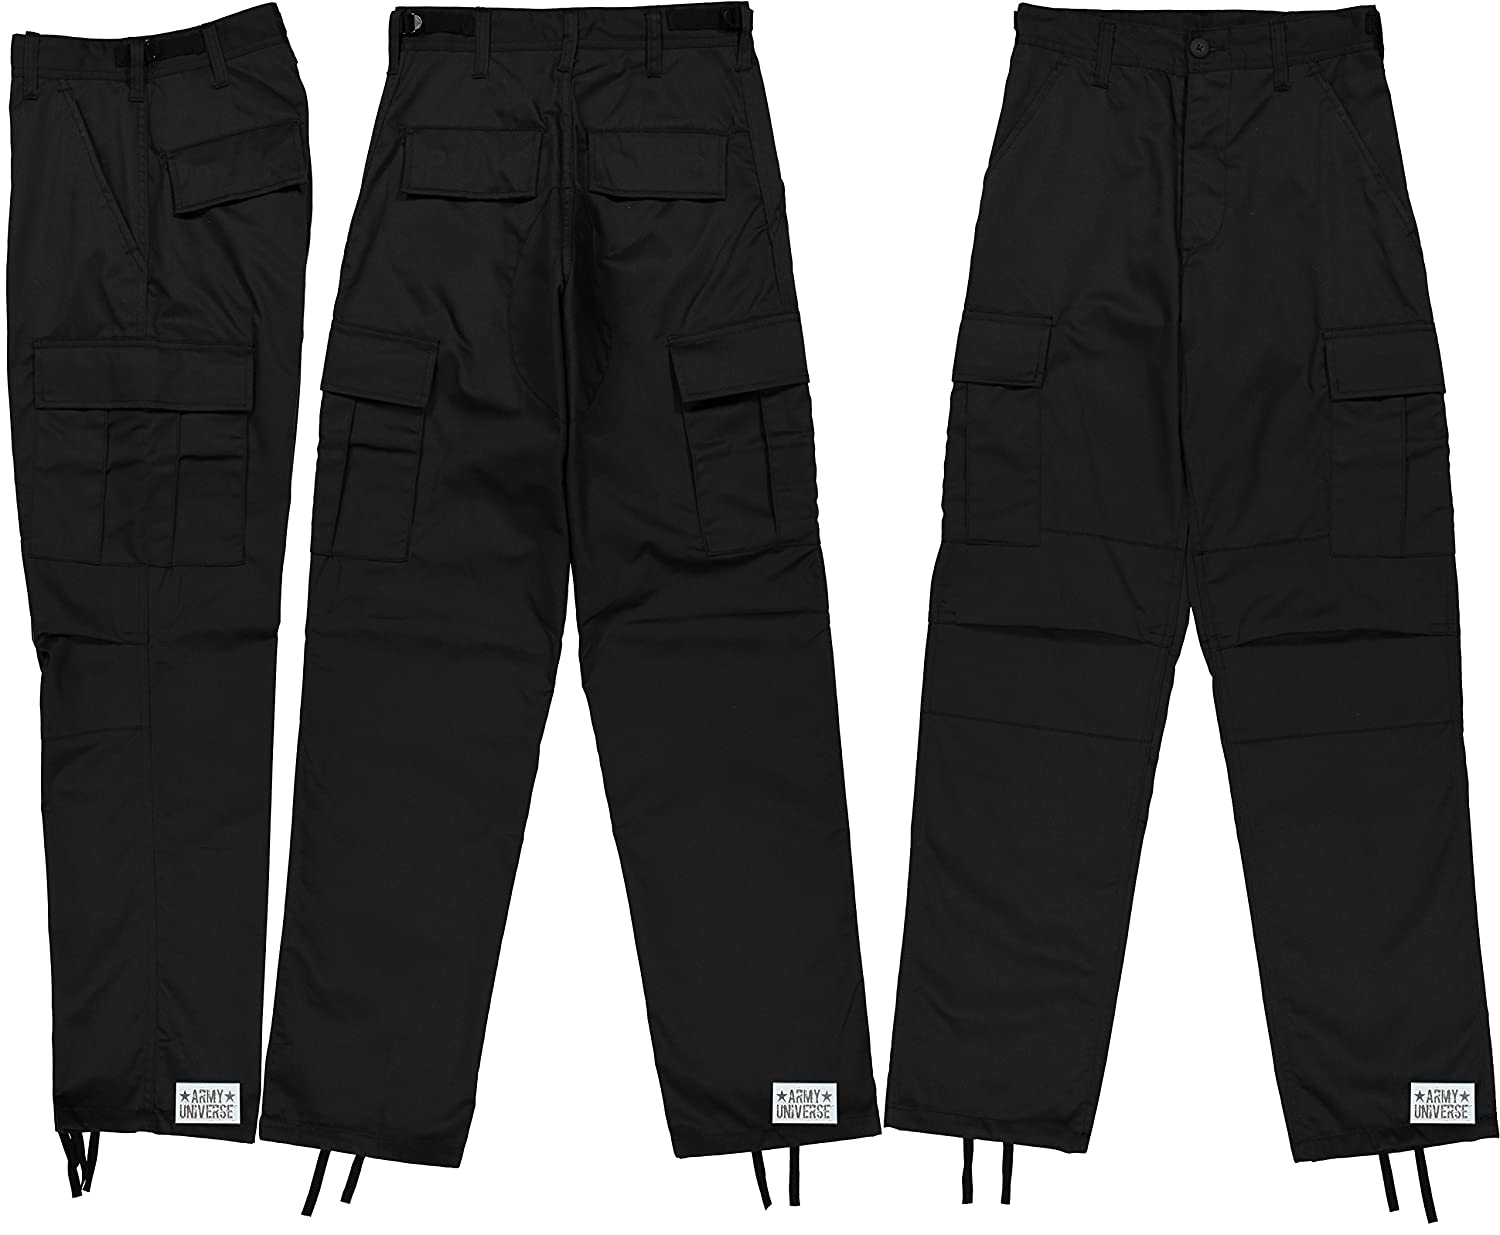 Amazon.com  Mens Black Poly Cotton Military Army Fatigues Work Utility  Uniform Cargo BDU Pants with Pin  Clothing 2fbdbe955805